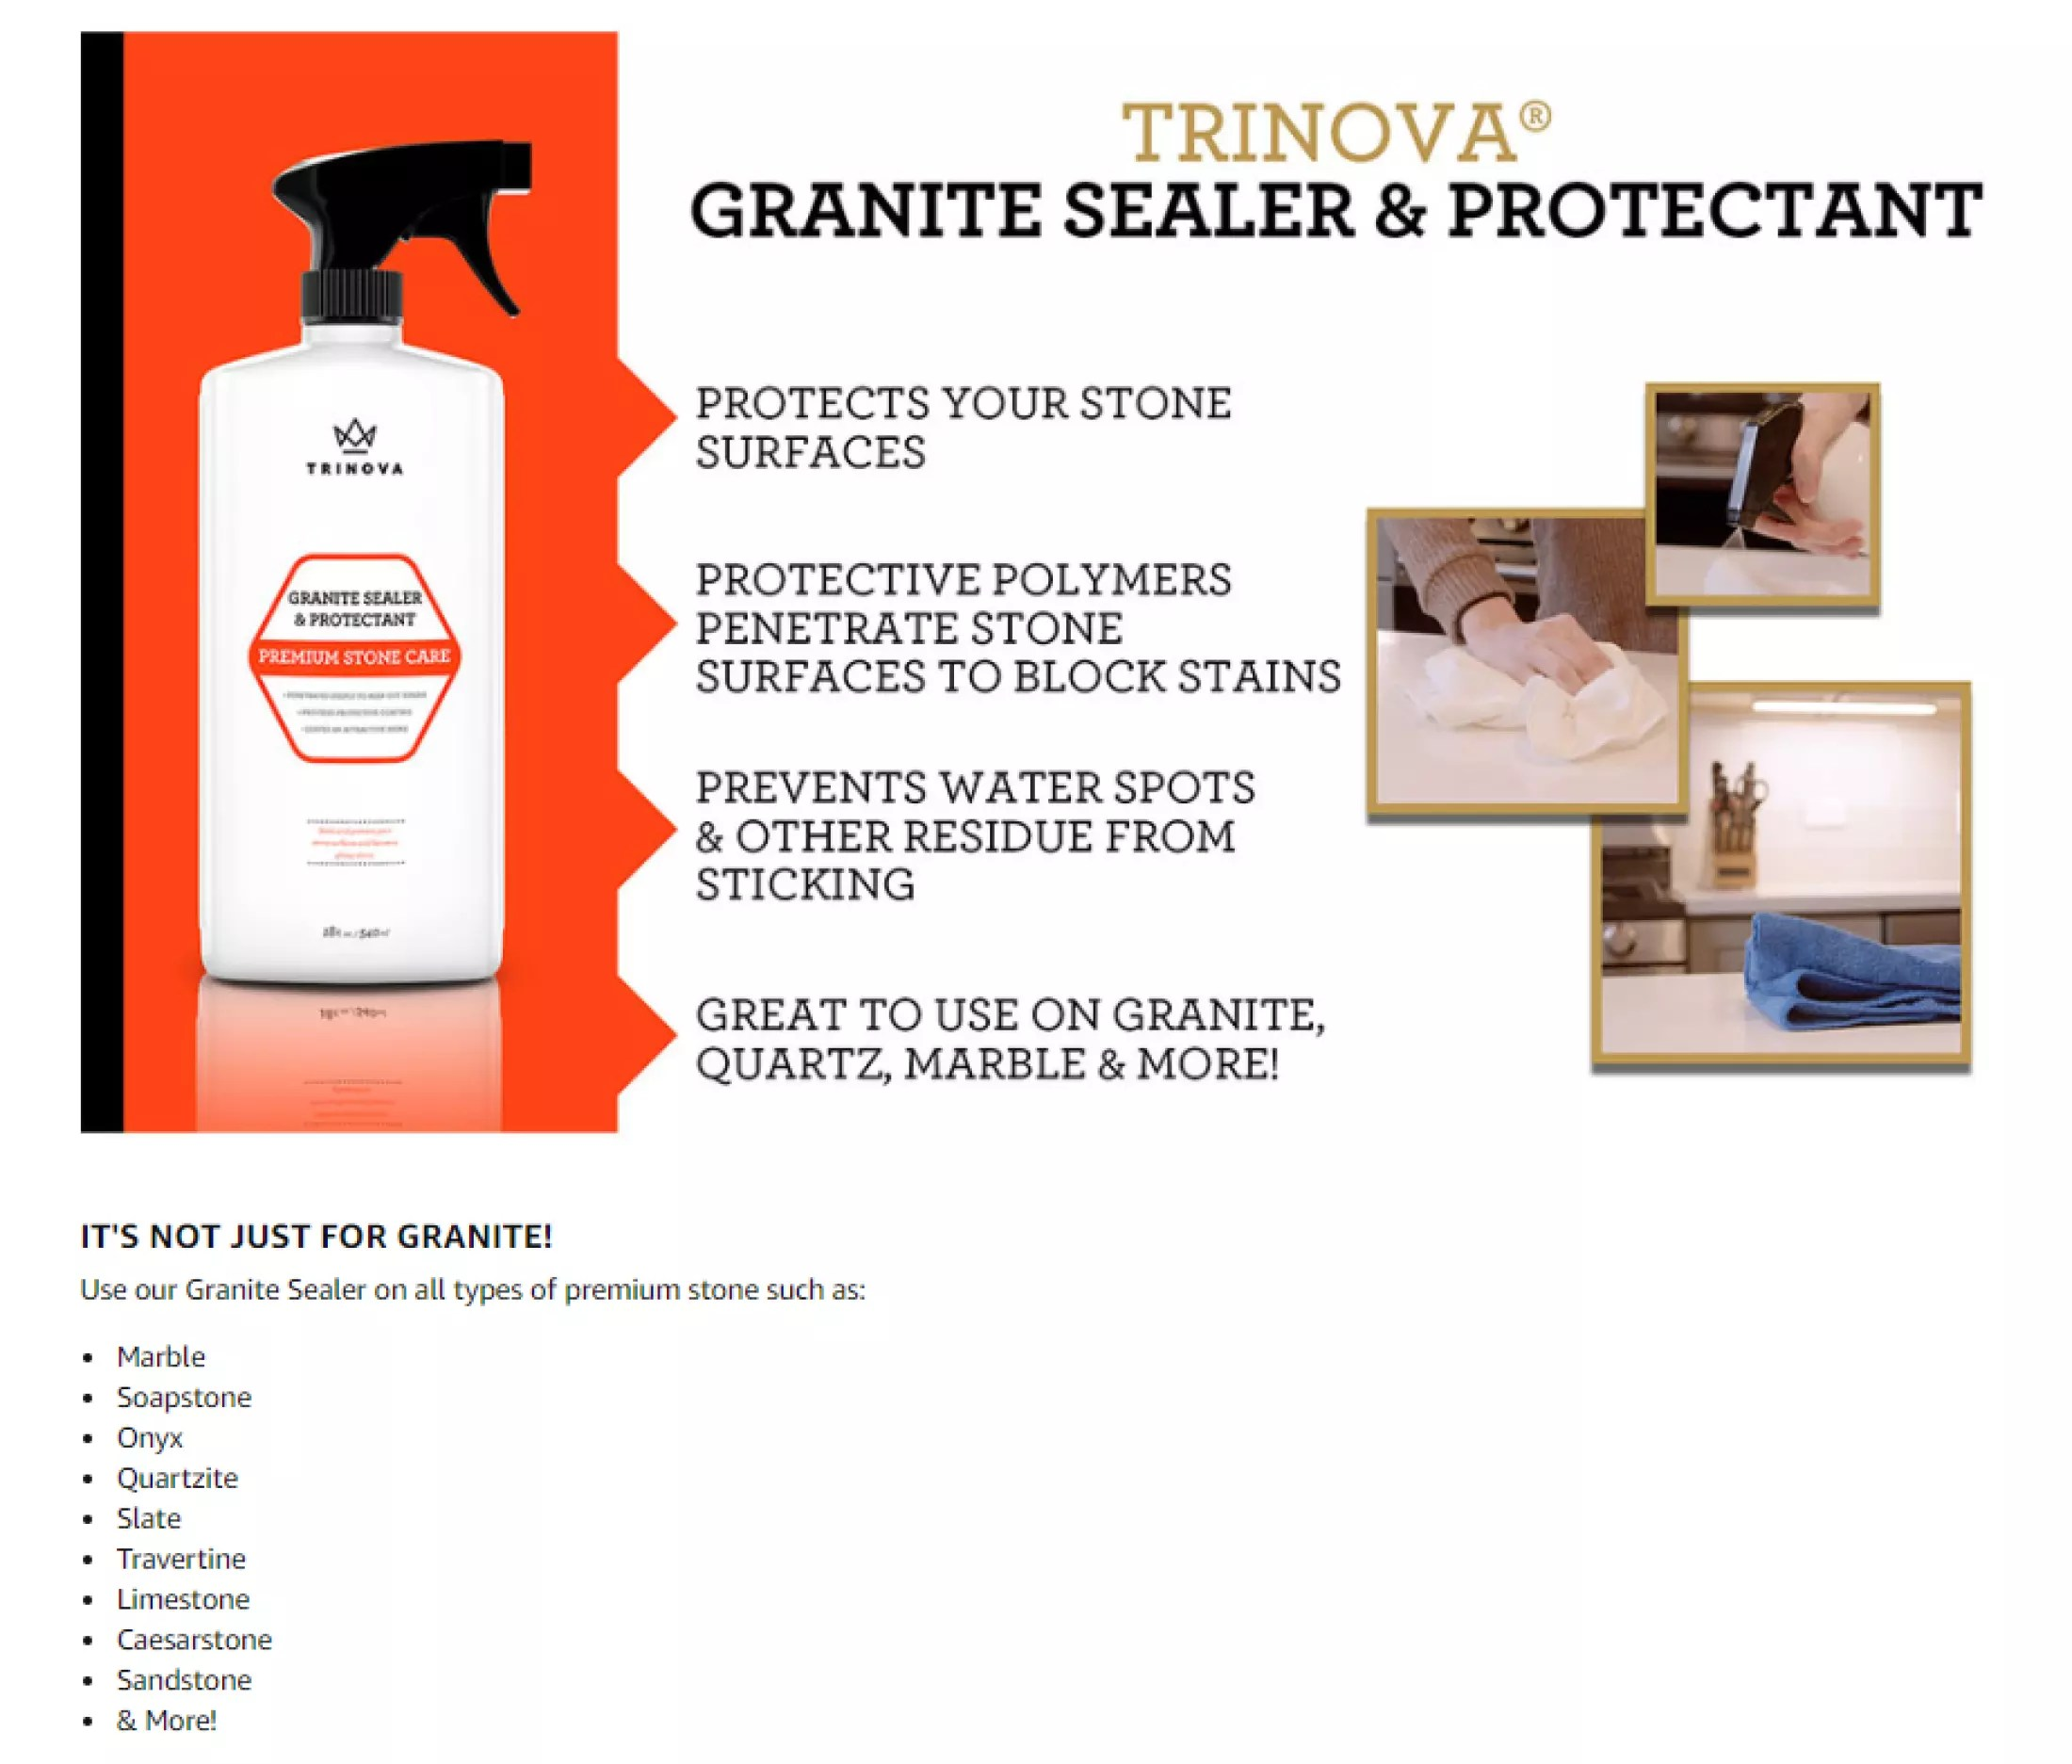 trinova granite sealer protector best stone polish protectant care product easy maintenance for clean countertop surface marble tile no